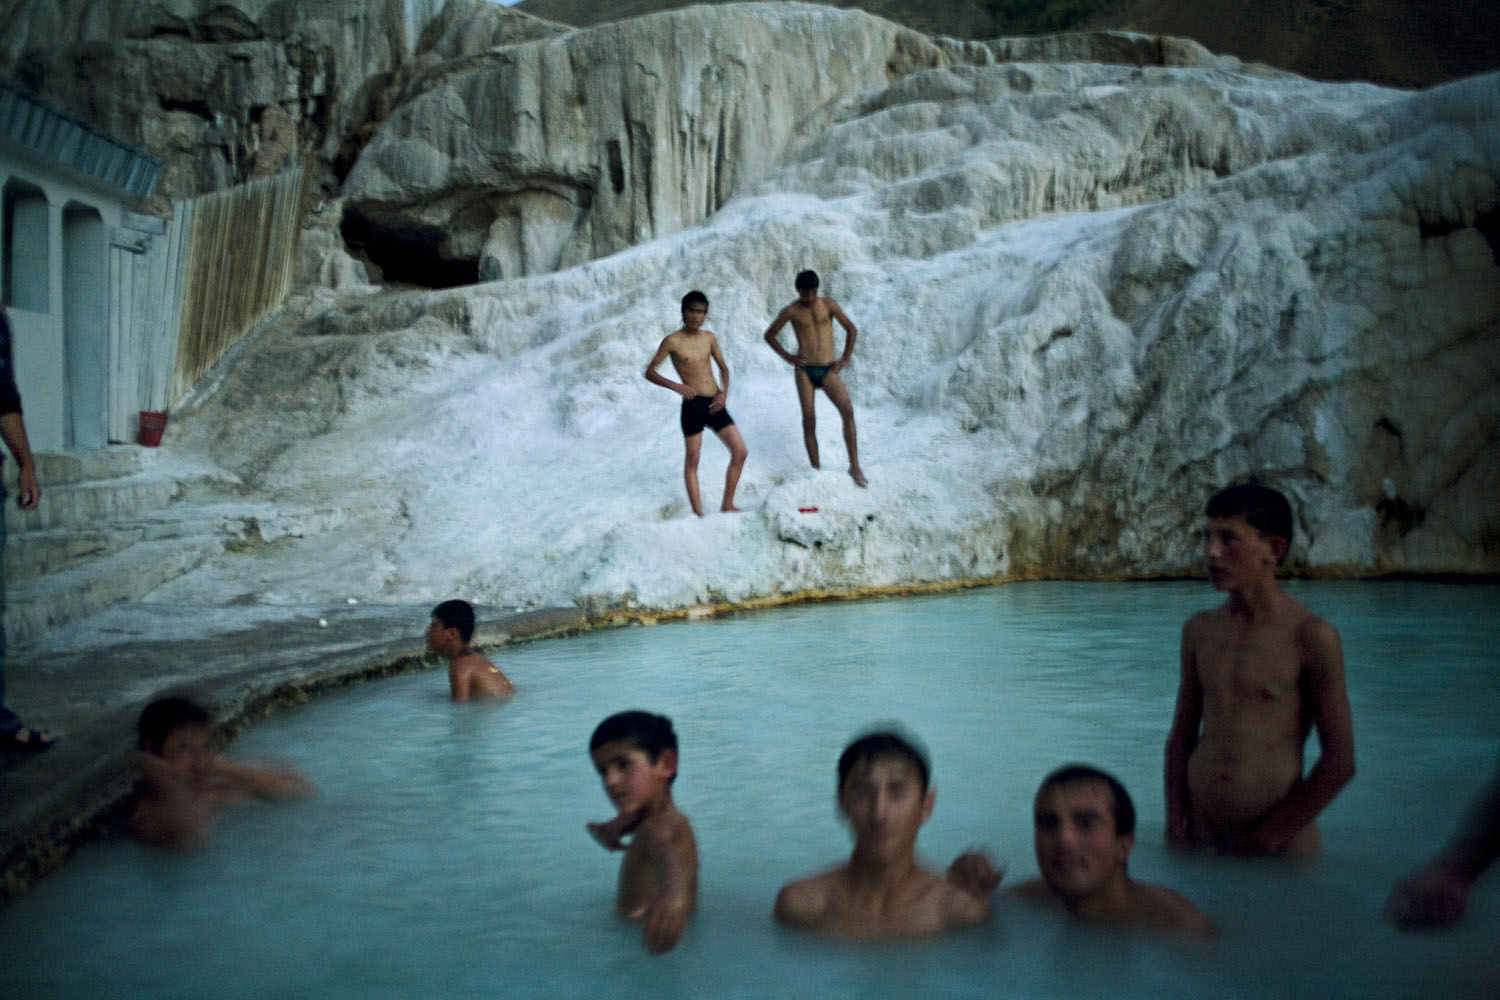 Mens hour in the main pool at Garam Chashma, a mineral spring in the Tajik Pamir mountains. People soak in the spring to cure skin ailments and other illnesses.                               Garam Chashma, Tajikistan